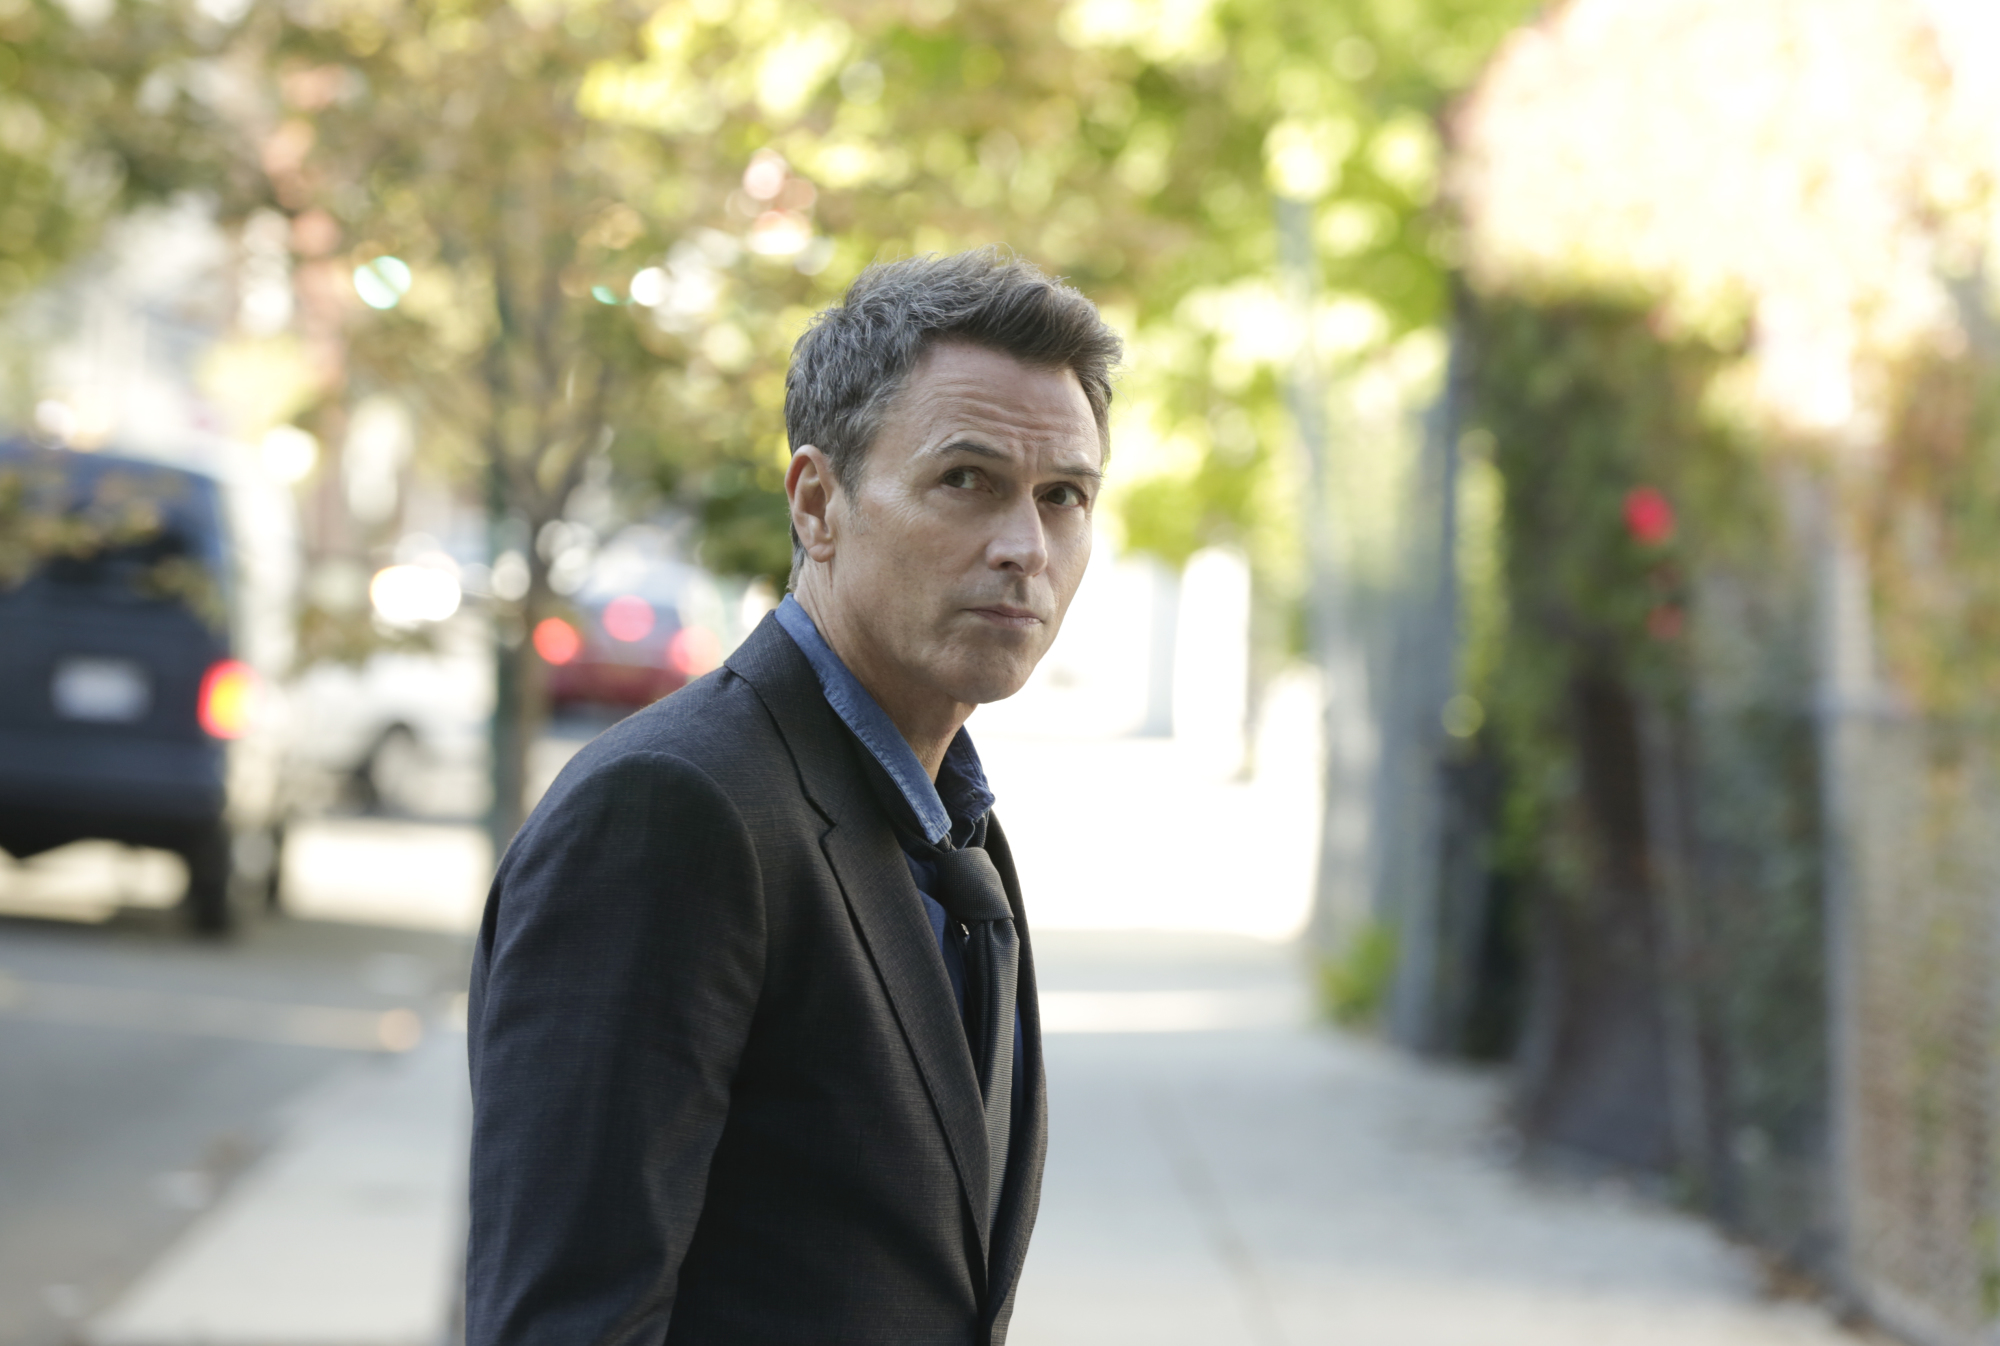 18. Tim Daly is a Pisces.